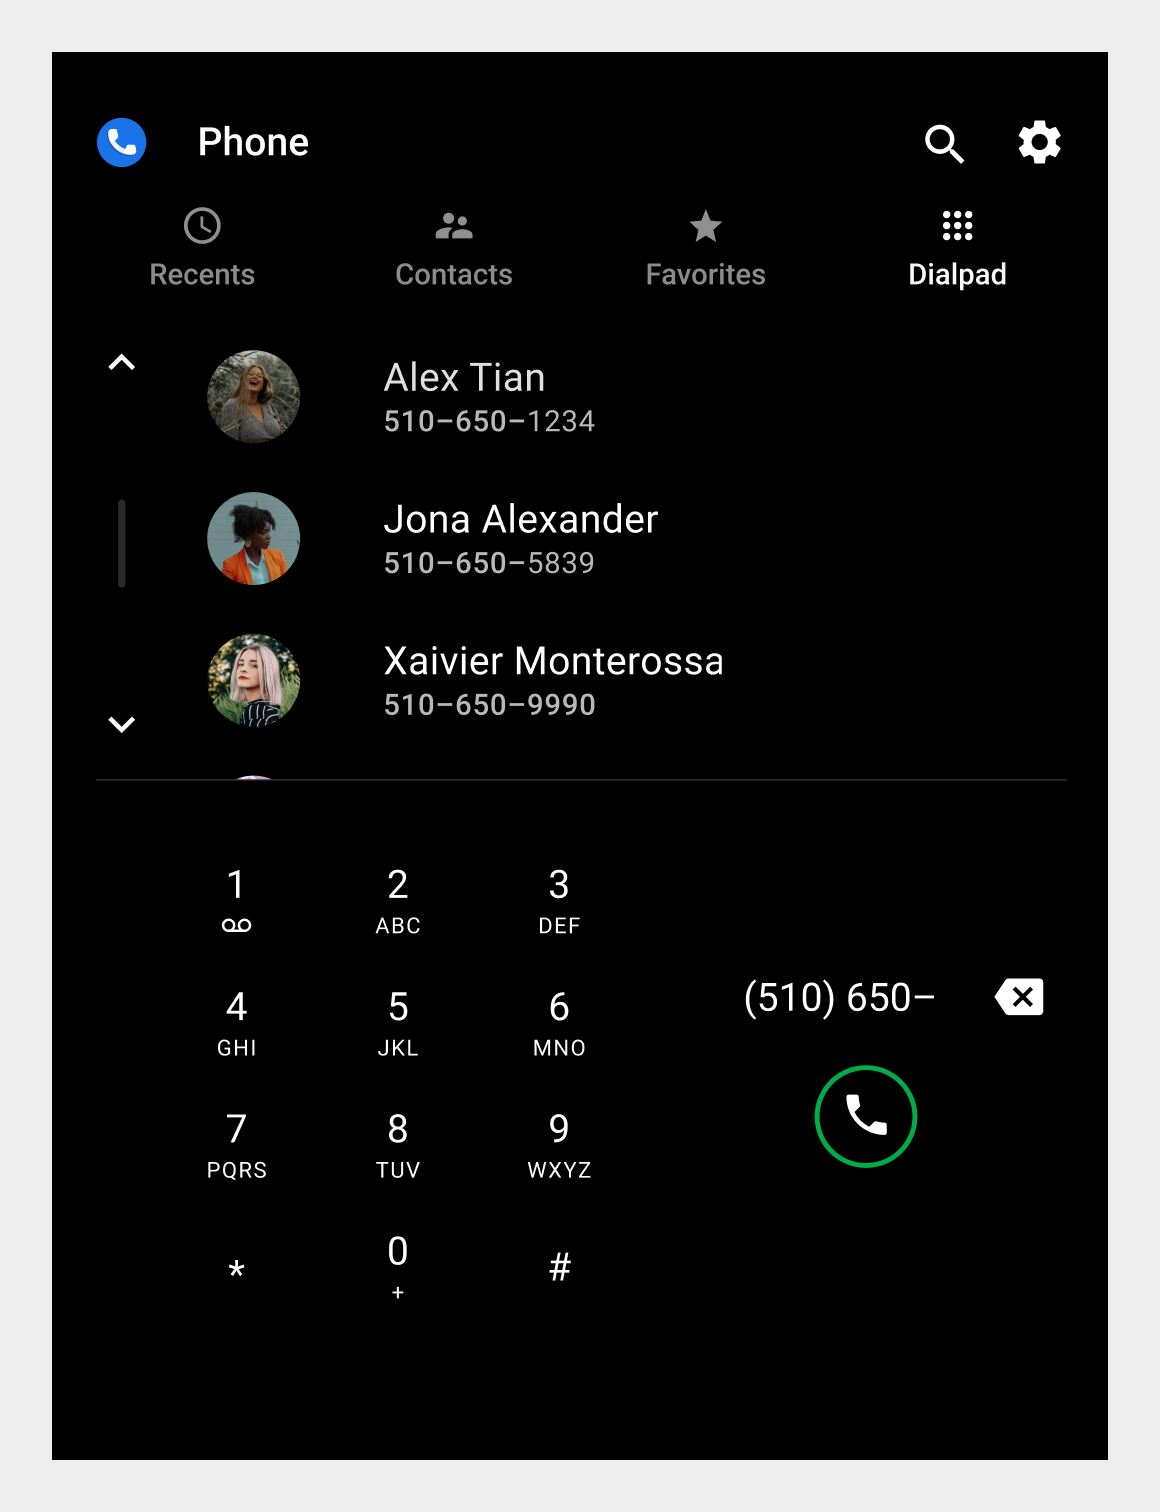 Dialpad tab portrait orientation with recognized contact